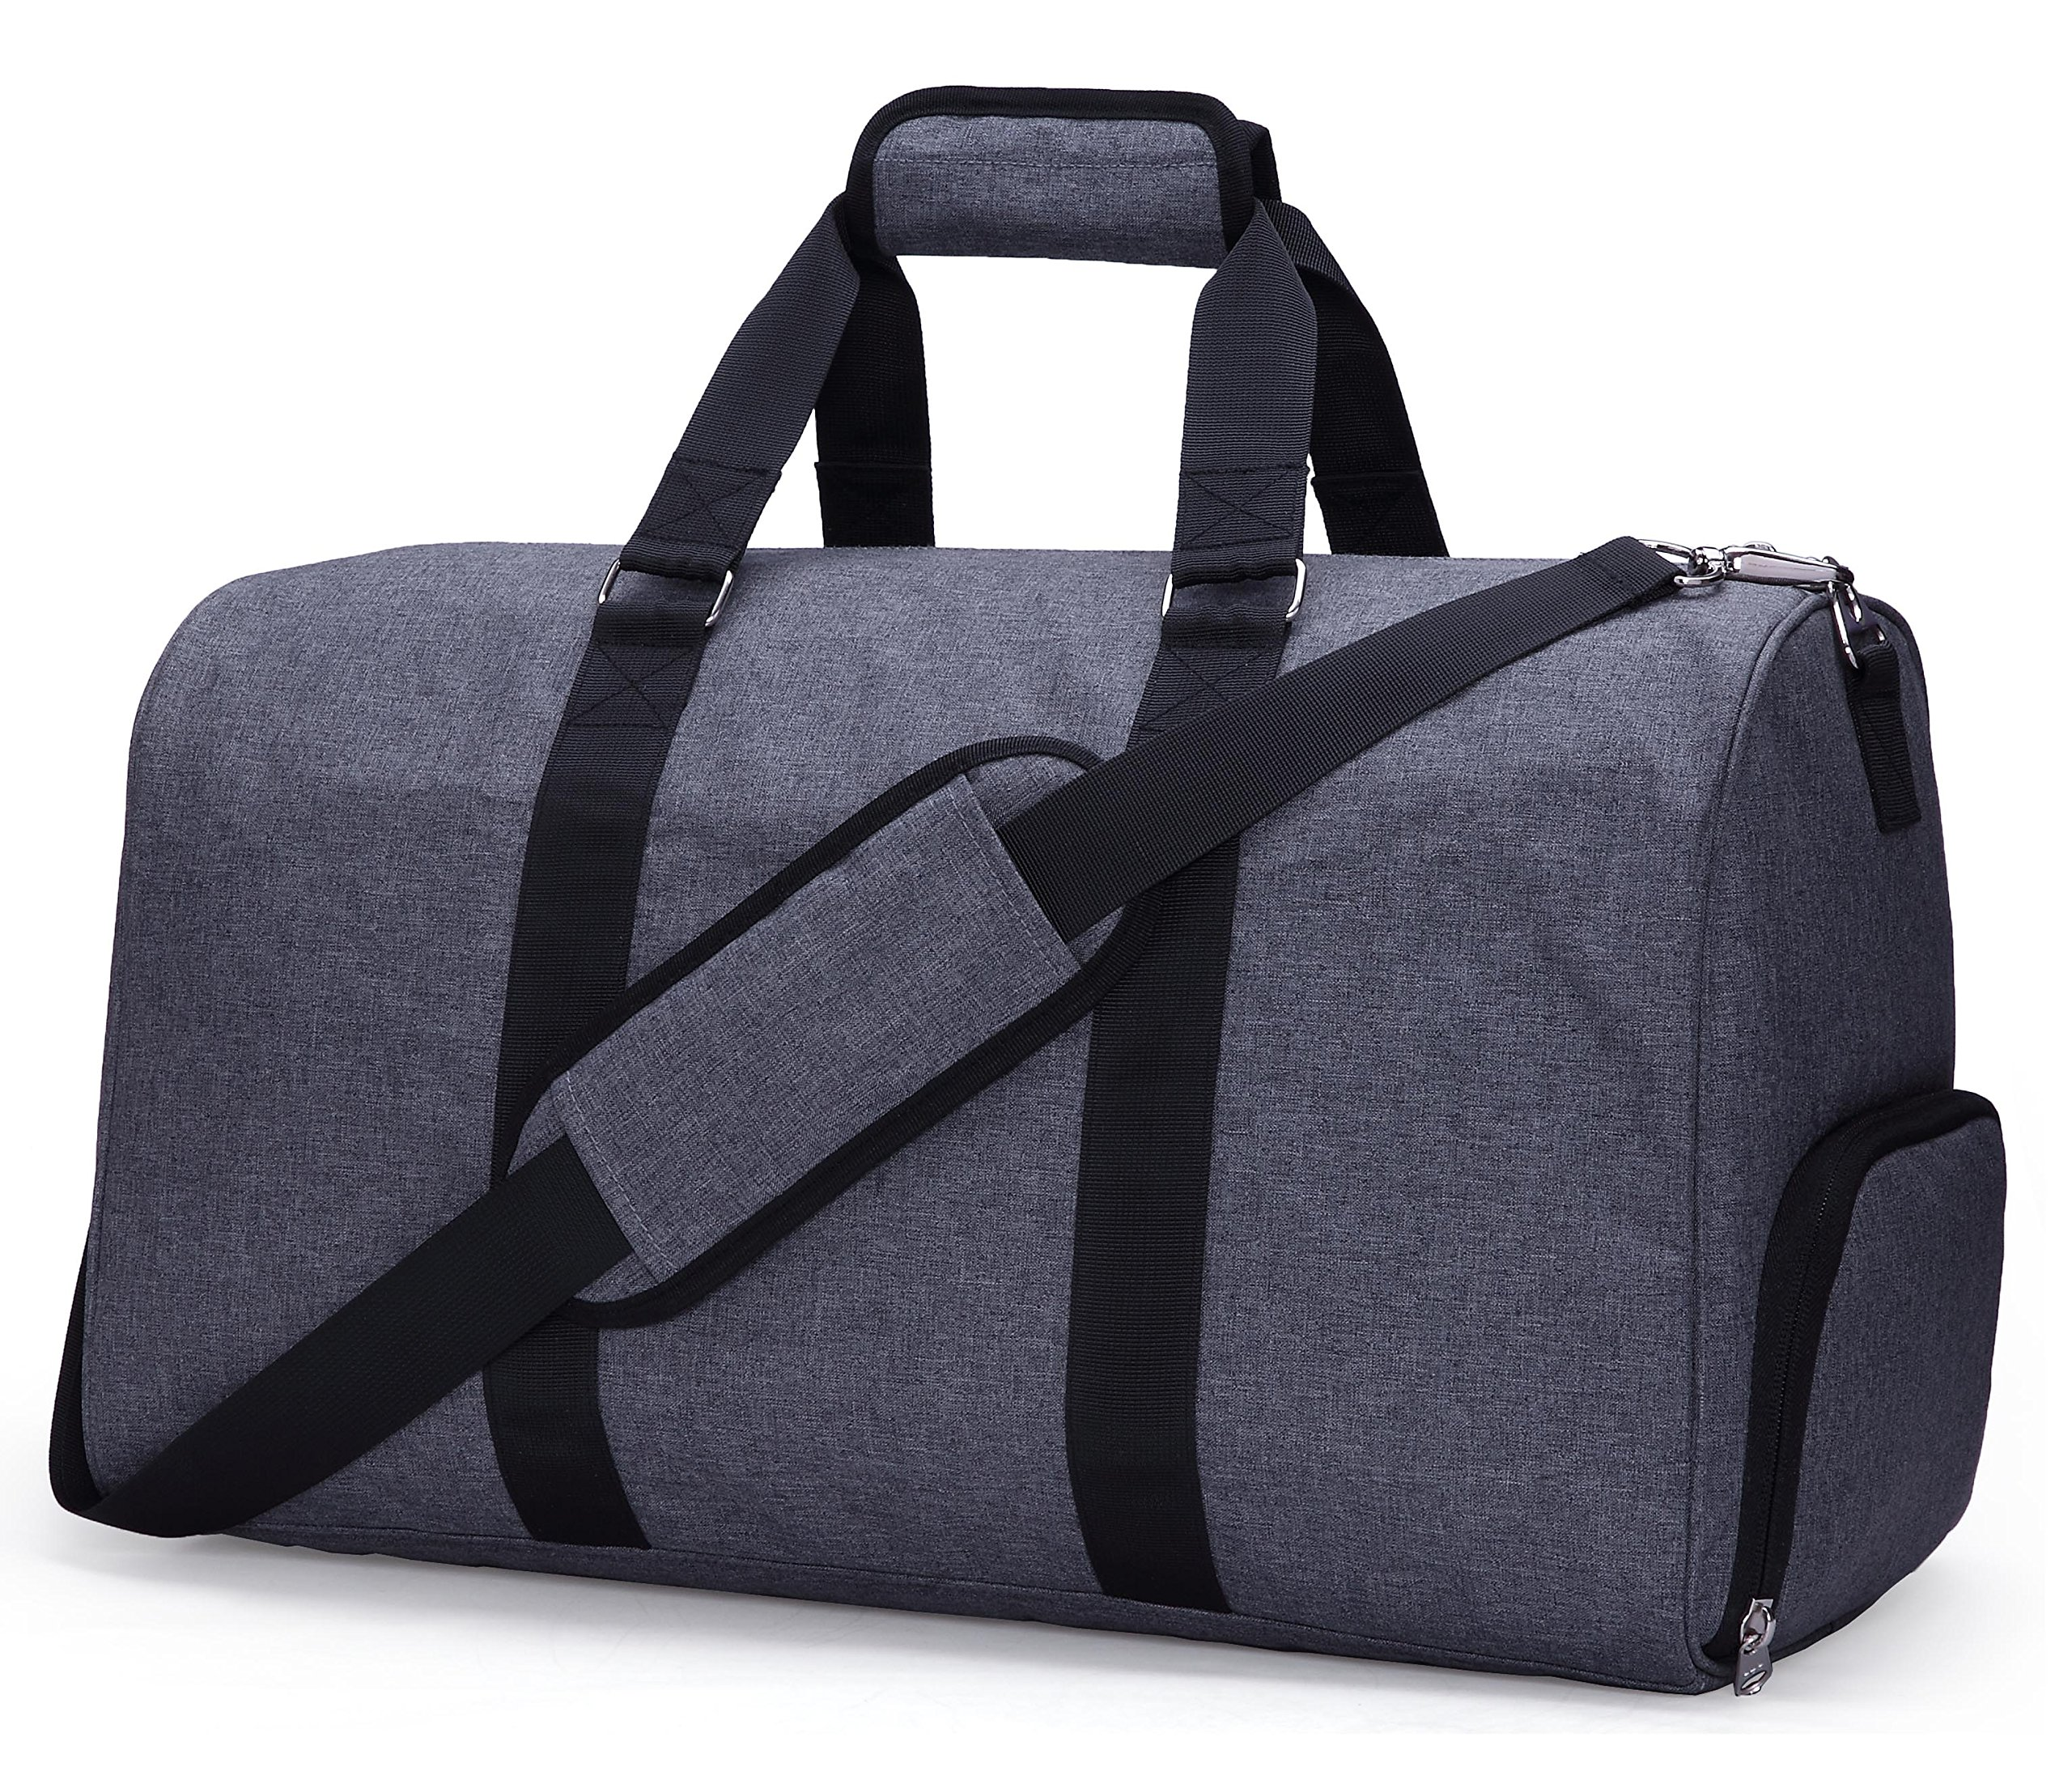 MIER Gym Duffel Bag for Men and Women with Shoe Compartment, Carry On Size, 20inches, Sets of 2(Large and Small), Grey